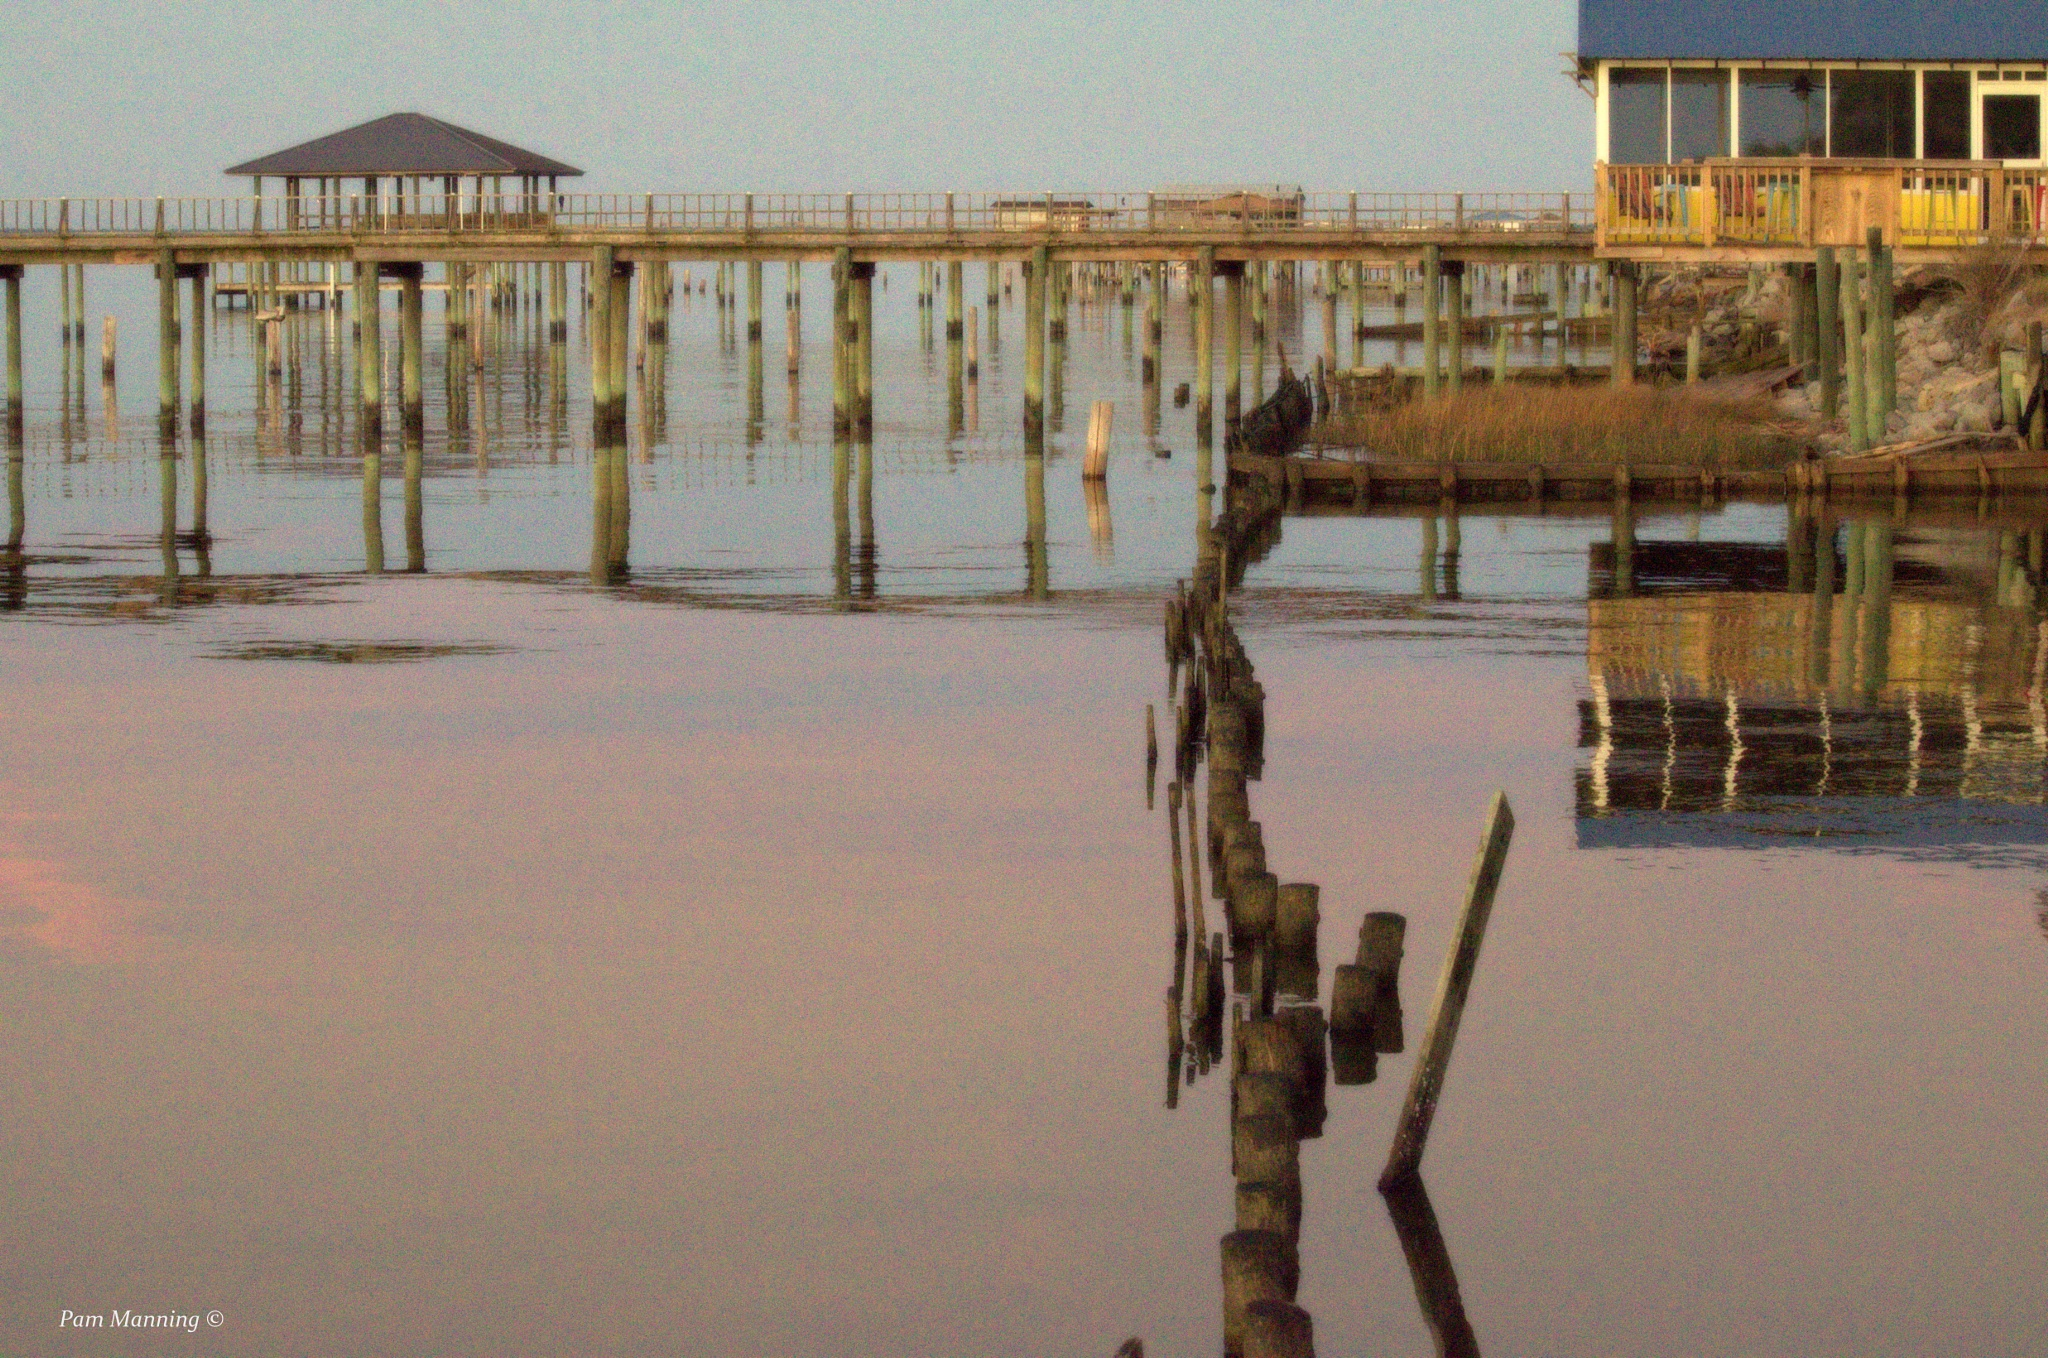 Reflections at the Bay by pam.satterfieldmanning